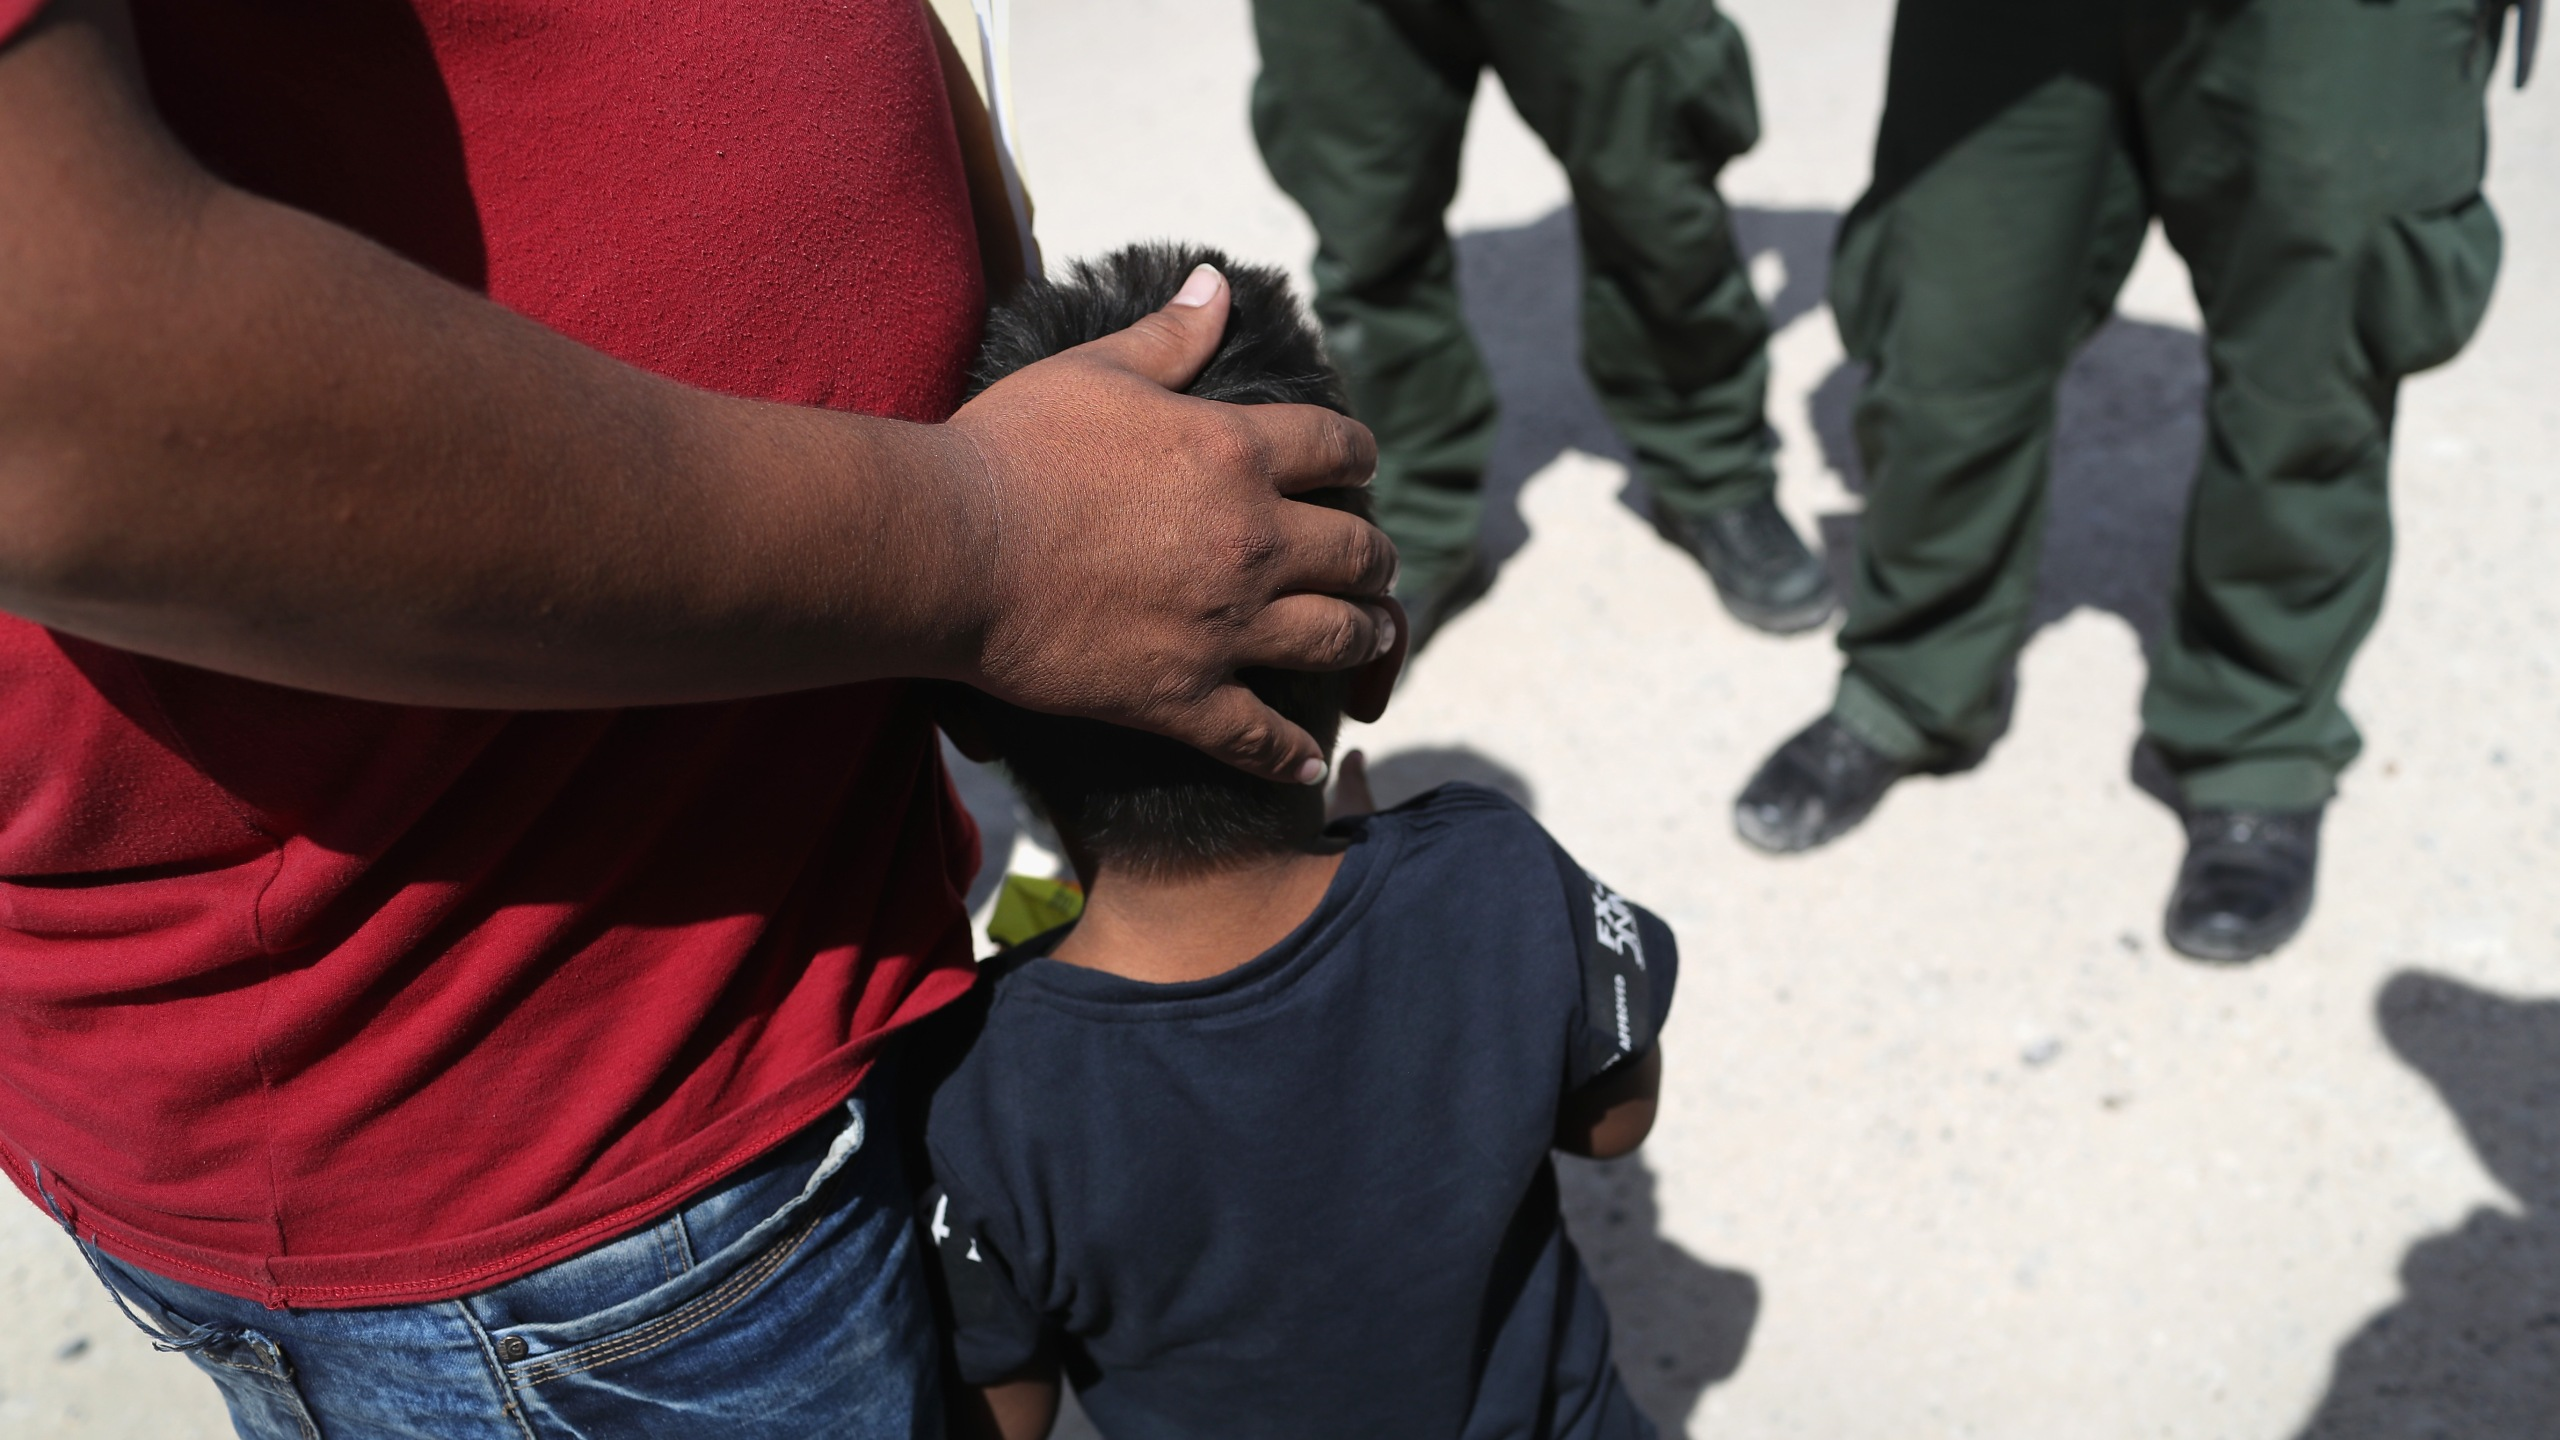 Border Patrol agents take a father and son from Honduras into custody near the U.S.-Mexico border on June 12, 2018 near Mission, Texas. (Credit: John Moore/Getty Images)